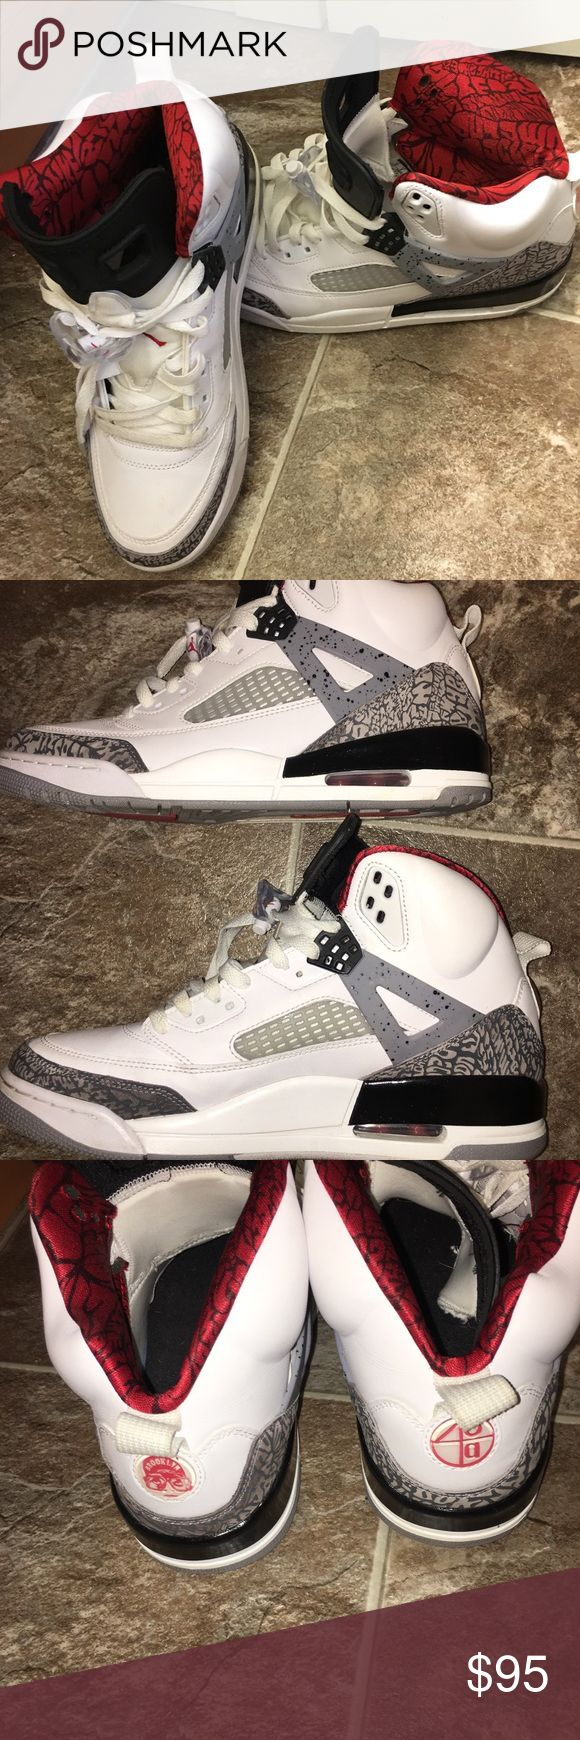 JORDAN SPIZIKE PAIR OF WHITE CEMENT JORDAN SPIZIKE SHOES. 9.5/10  STILL IN INCREDIBELY AMAZING CONDITION. THESE WERE RELEASED TO CELEBRATE SPIKE LEE'S JOINING OF THE JORDAN BRAND. Jordan Shoes Athletic Shoes